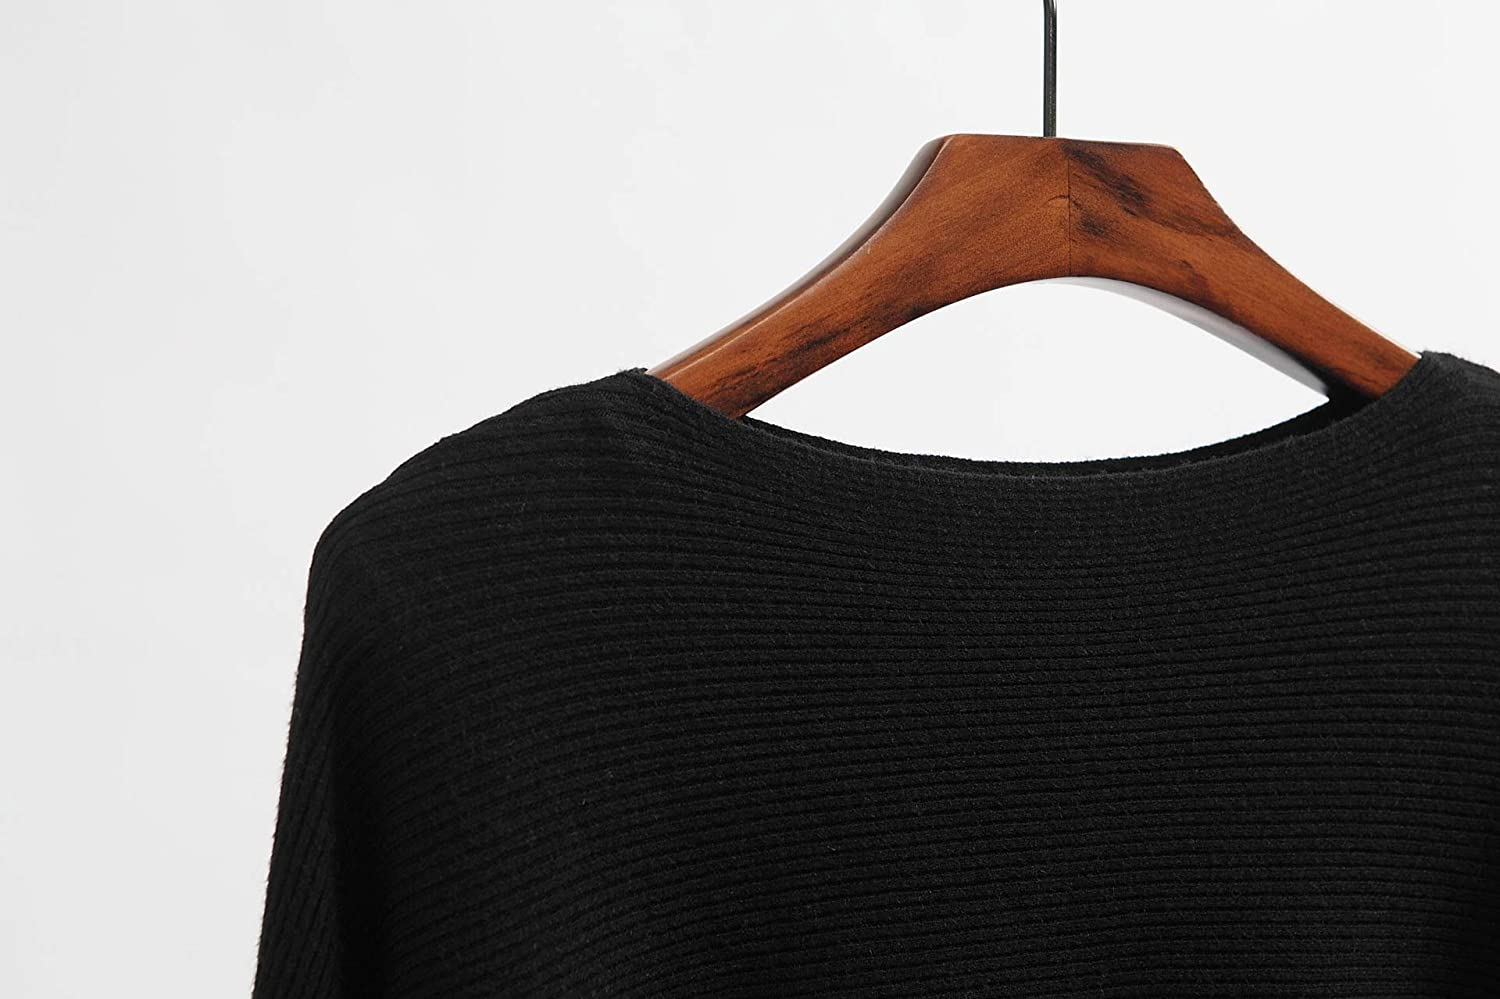 GABERLY Boat Neck Batwing Sleeves Dolman Knitted Sweaters and Pullovers Tops for Women